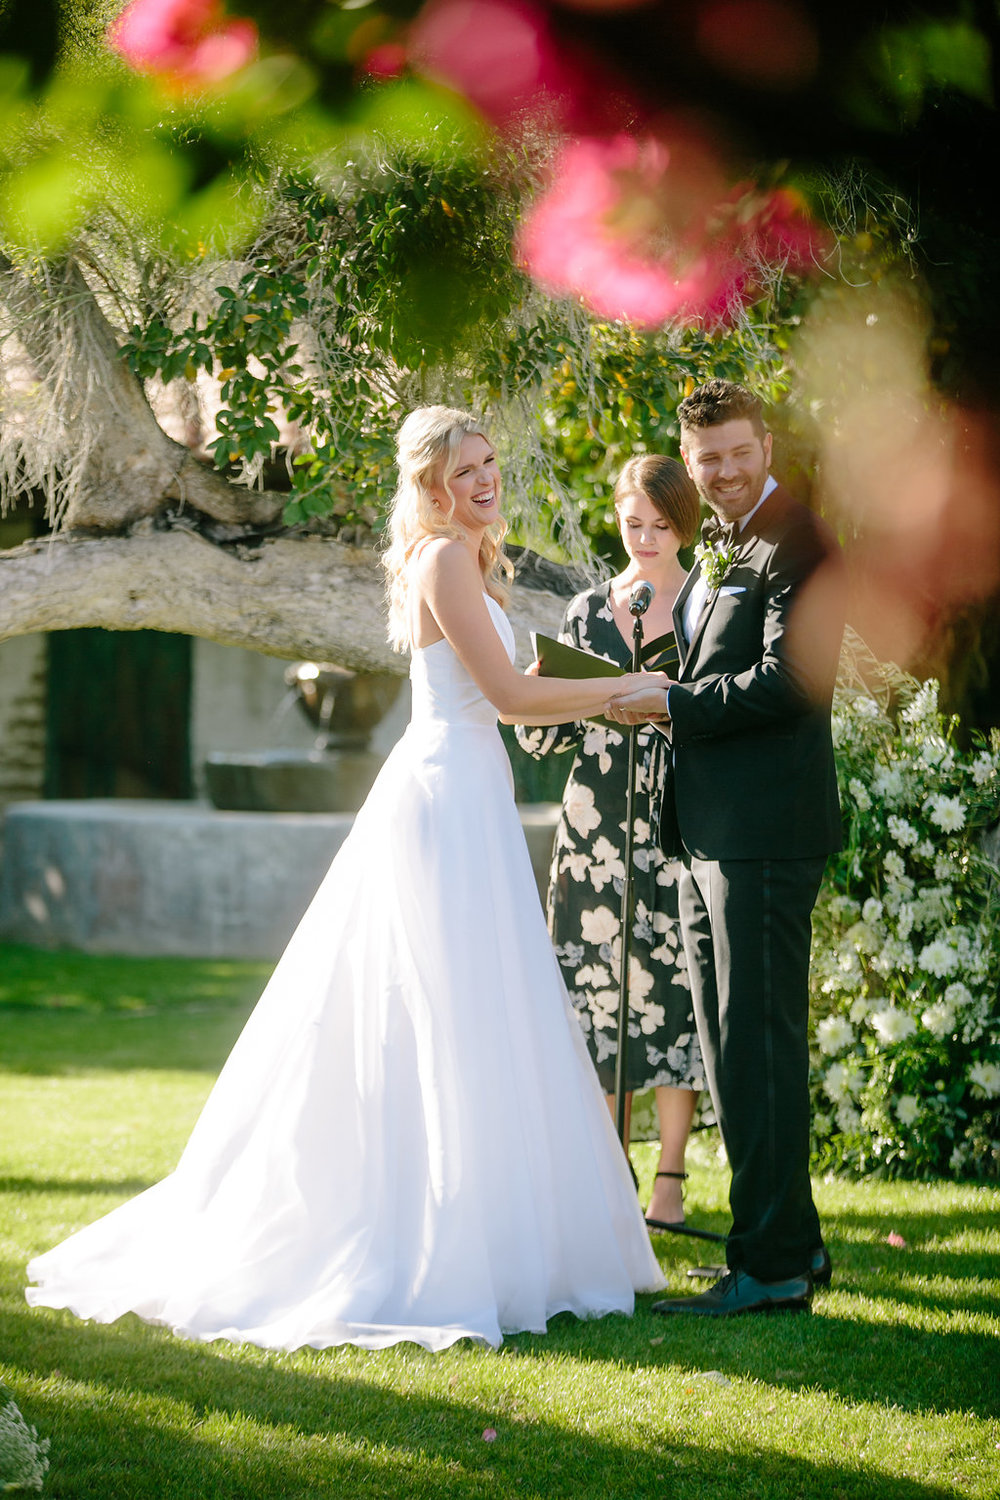 kailey-isaac-mann-palm-springs-wedding.jpg